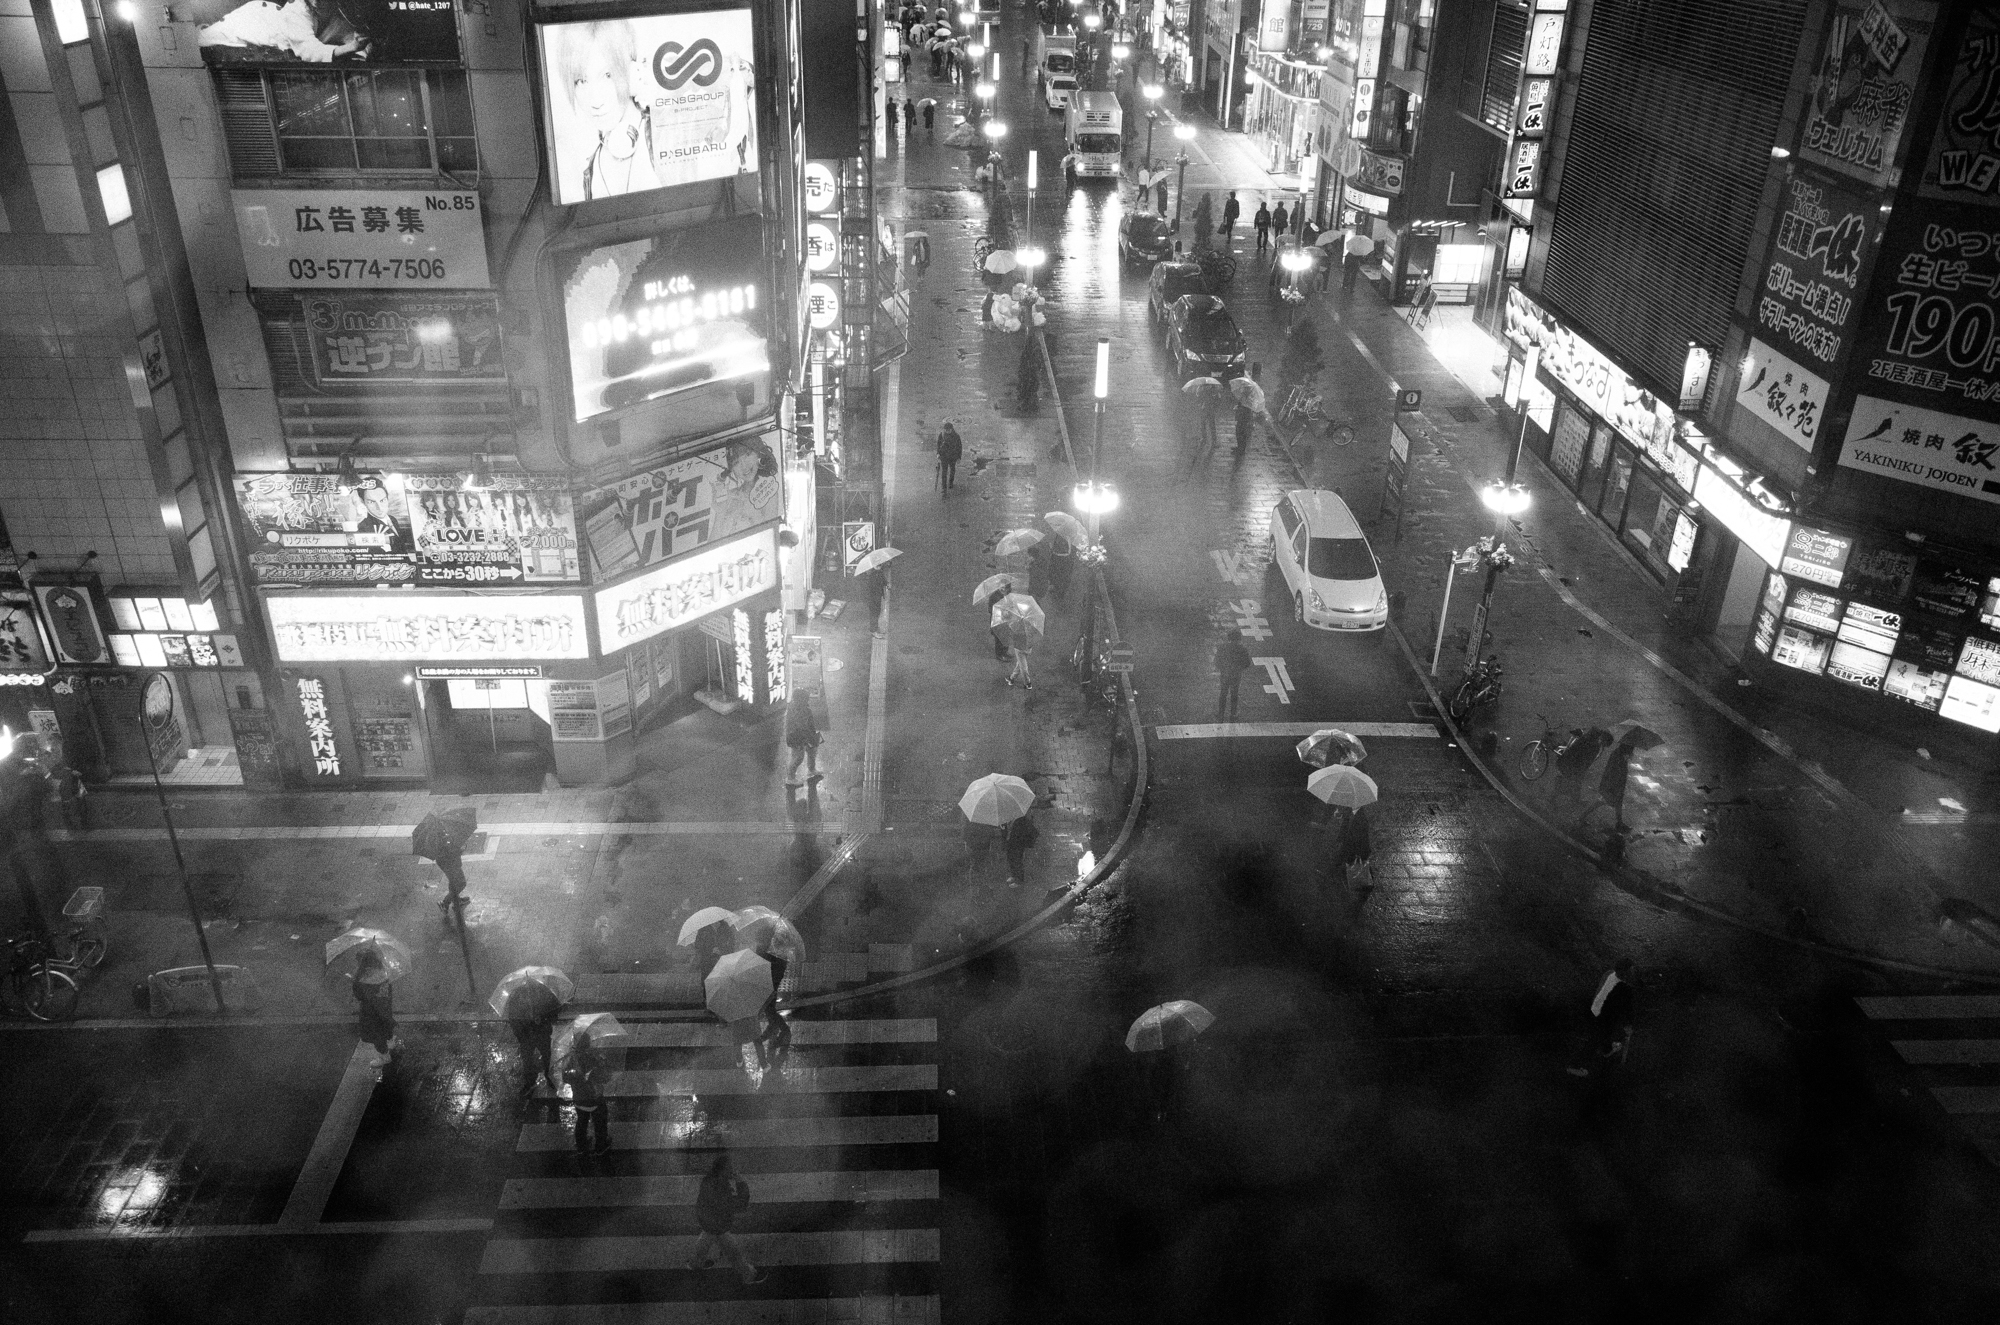 huynh_rainy_nights_in_kabukicho_2